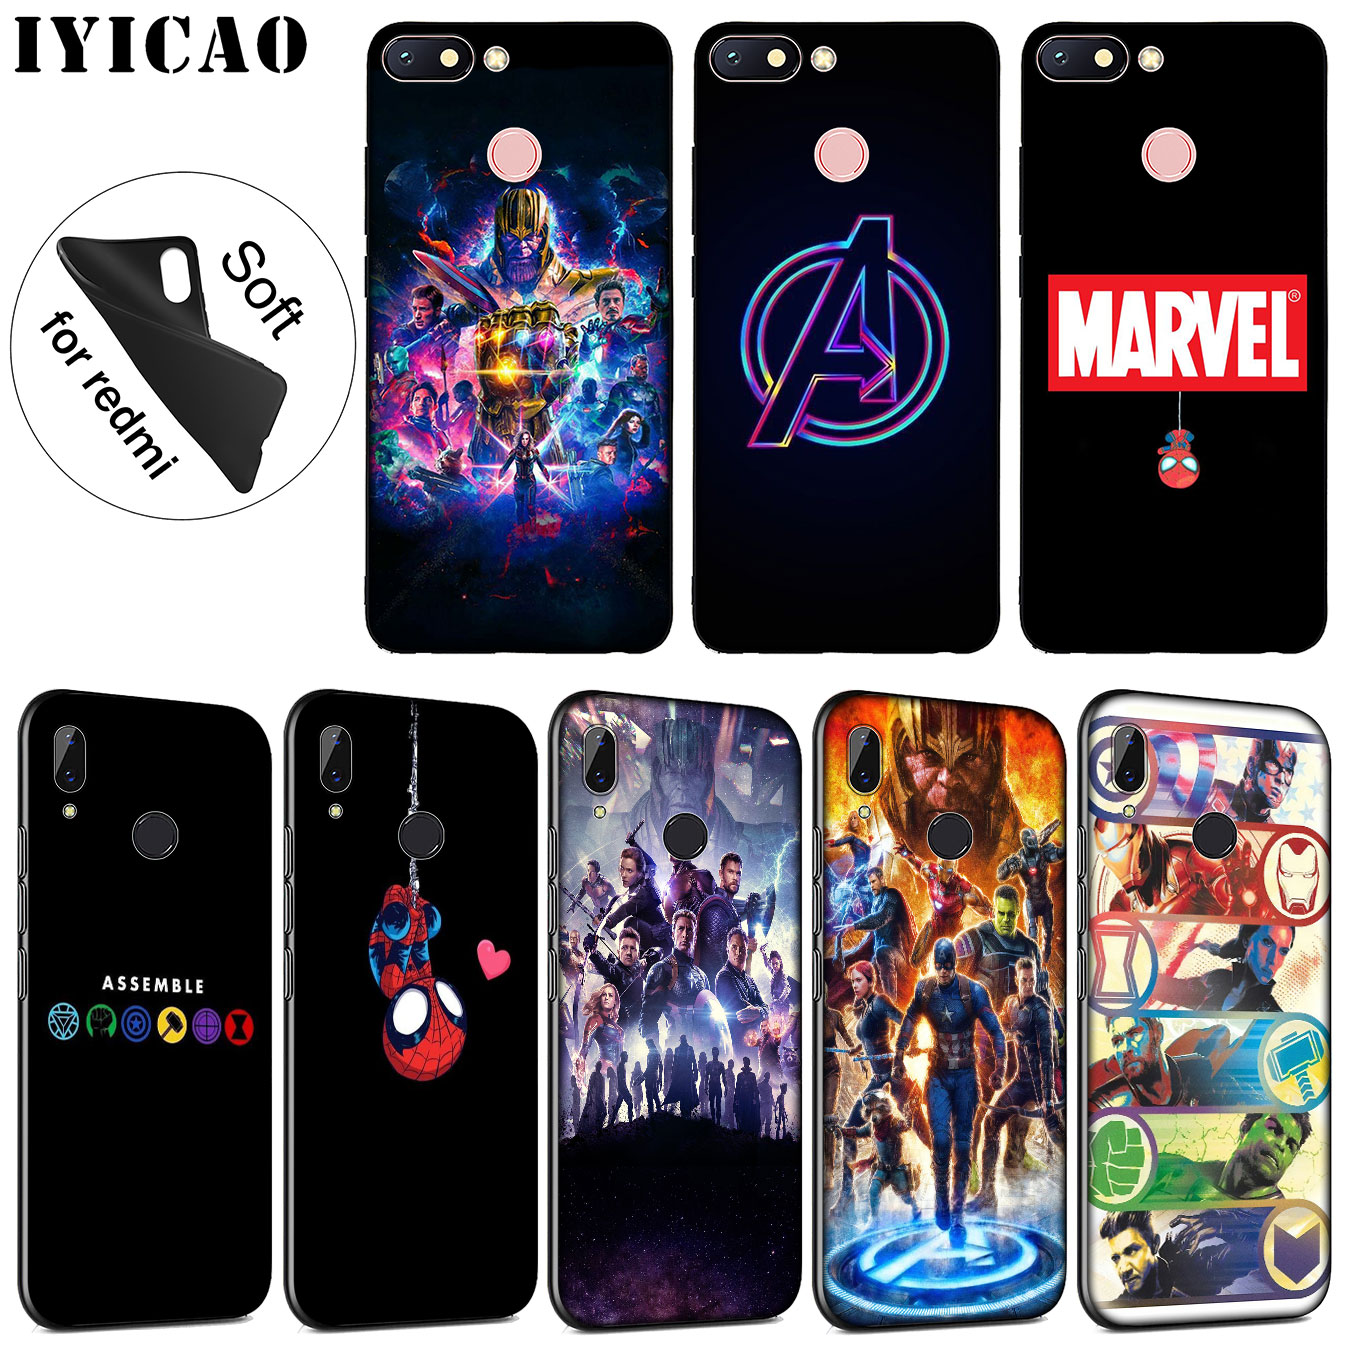 Avengers Endgame Marvel Spider Iron Man Thanos Soft Phone Case 1